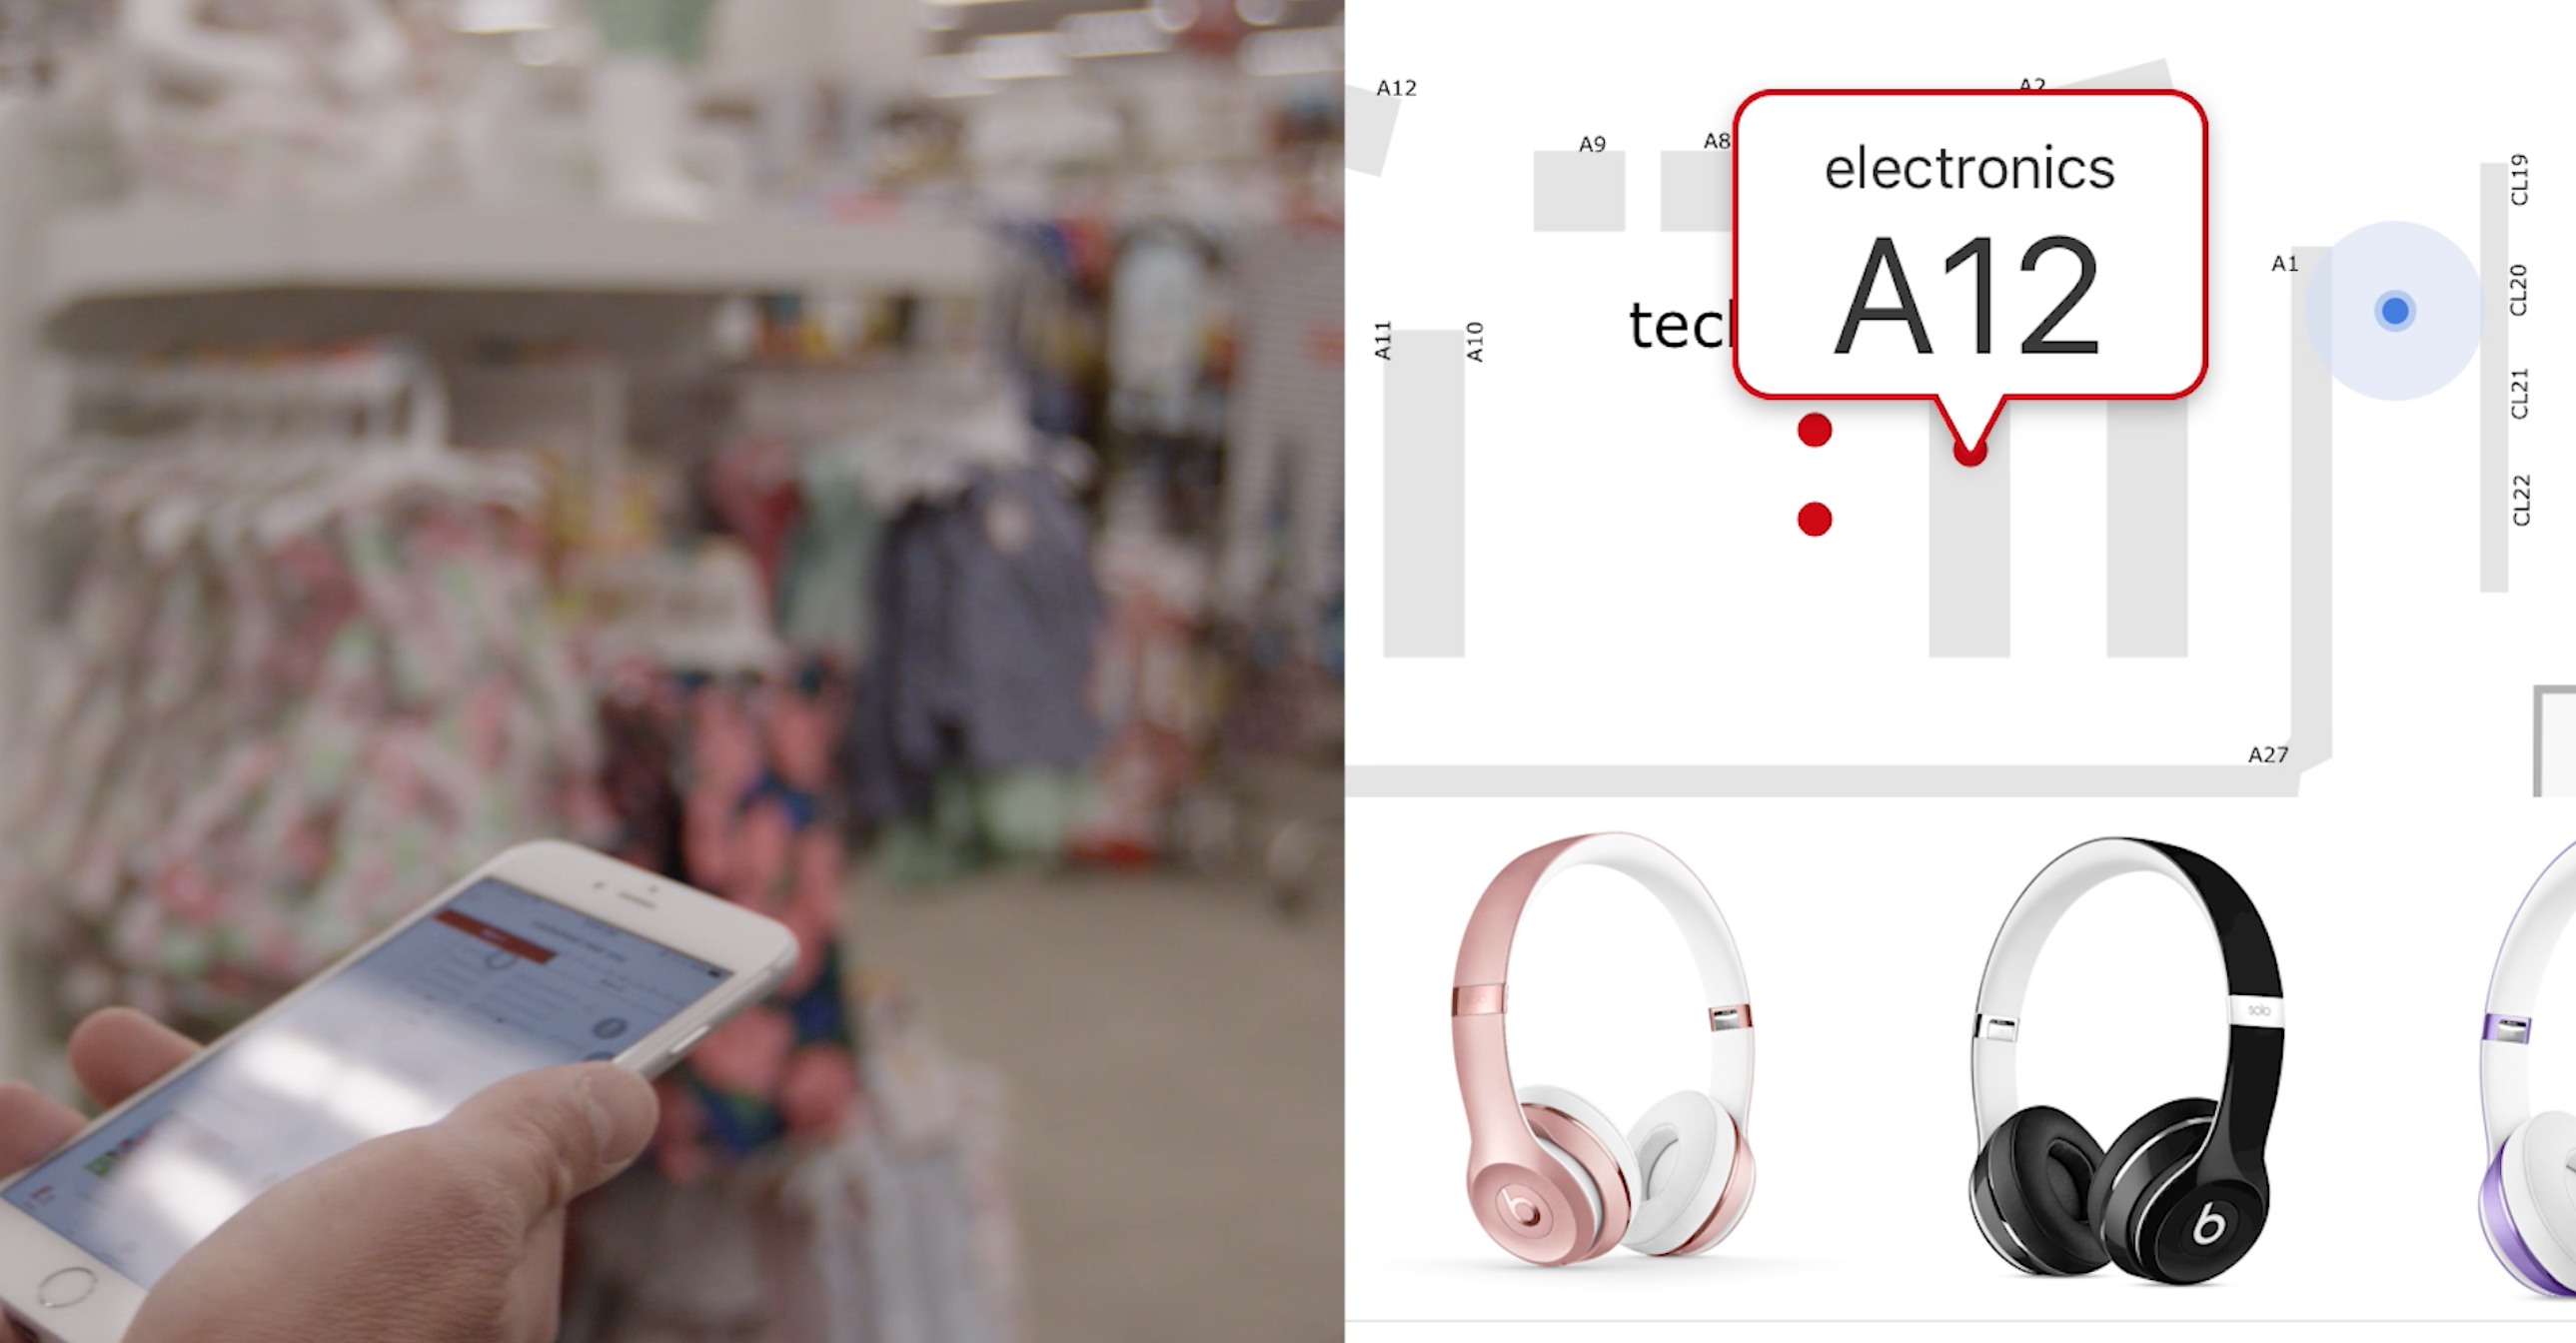 Target rolls out Bluetooth beacon technology in stores to power new indoor  maps in its app | TechCrunch